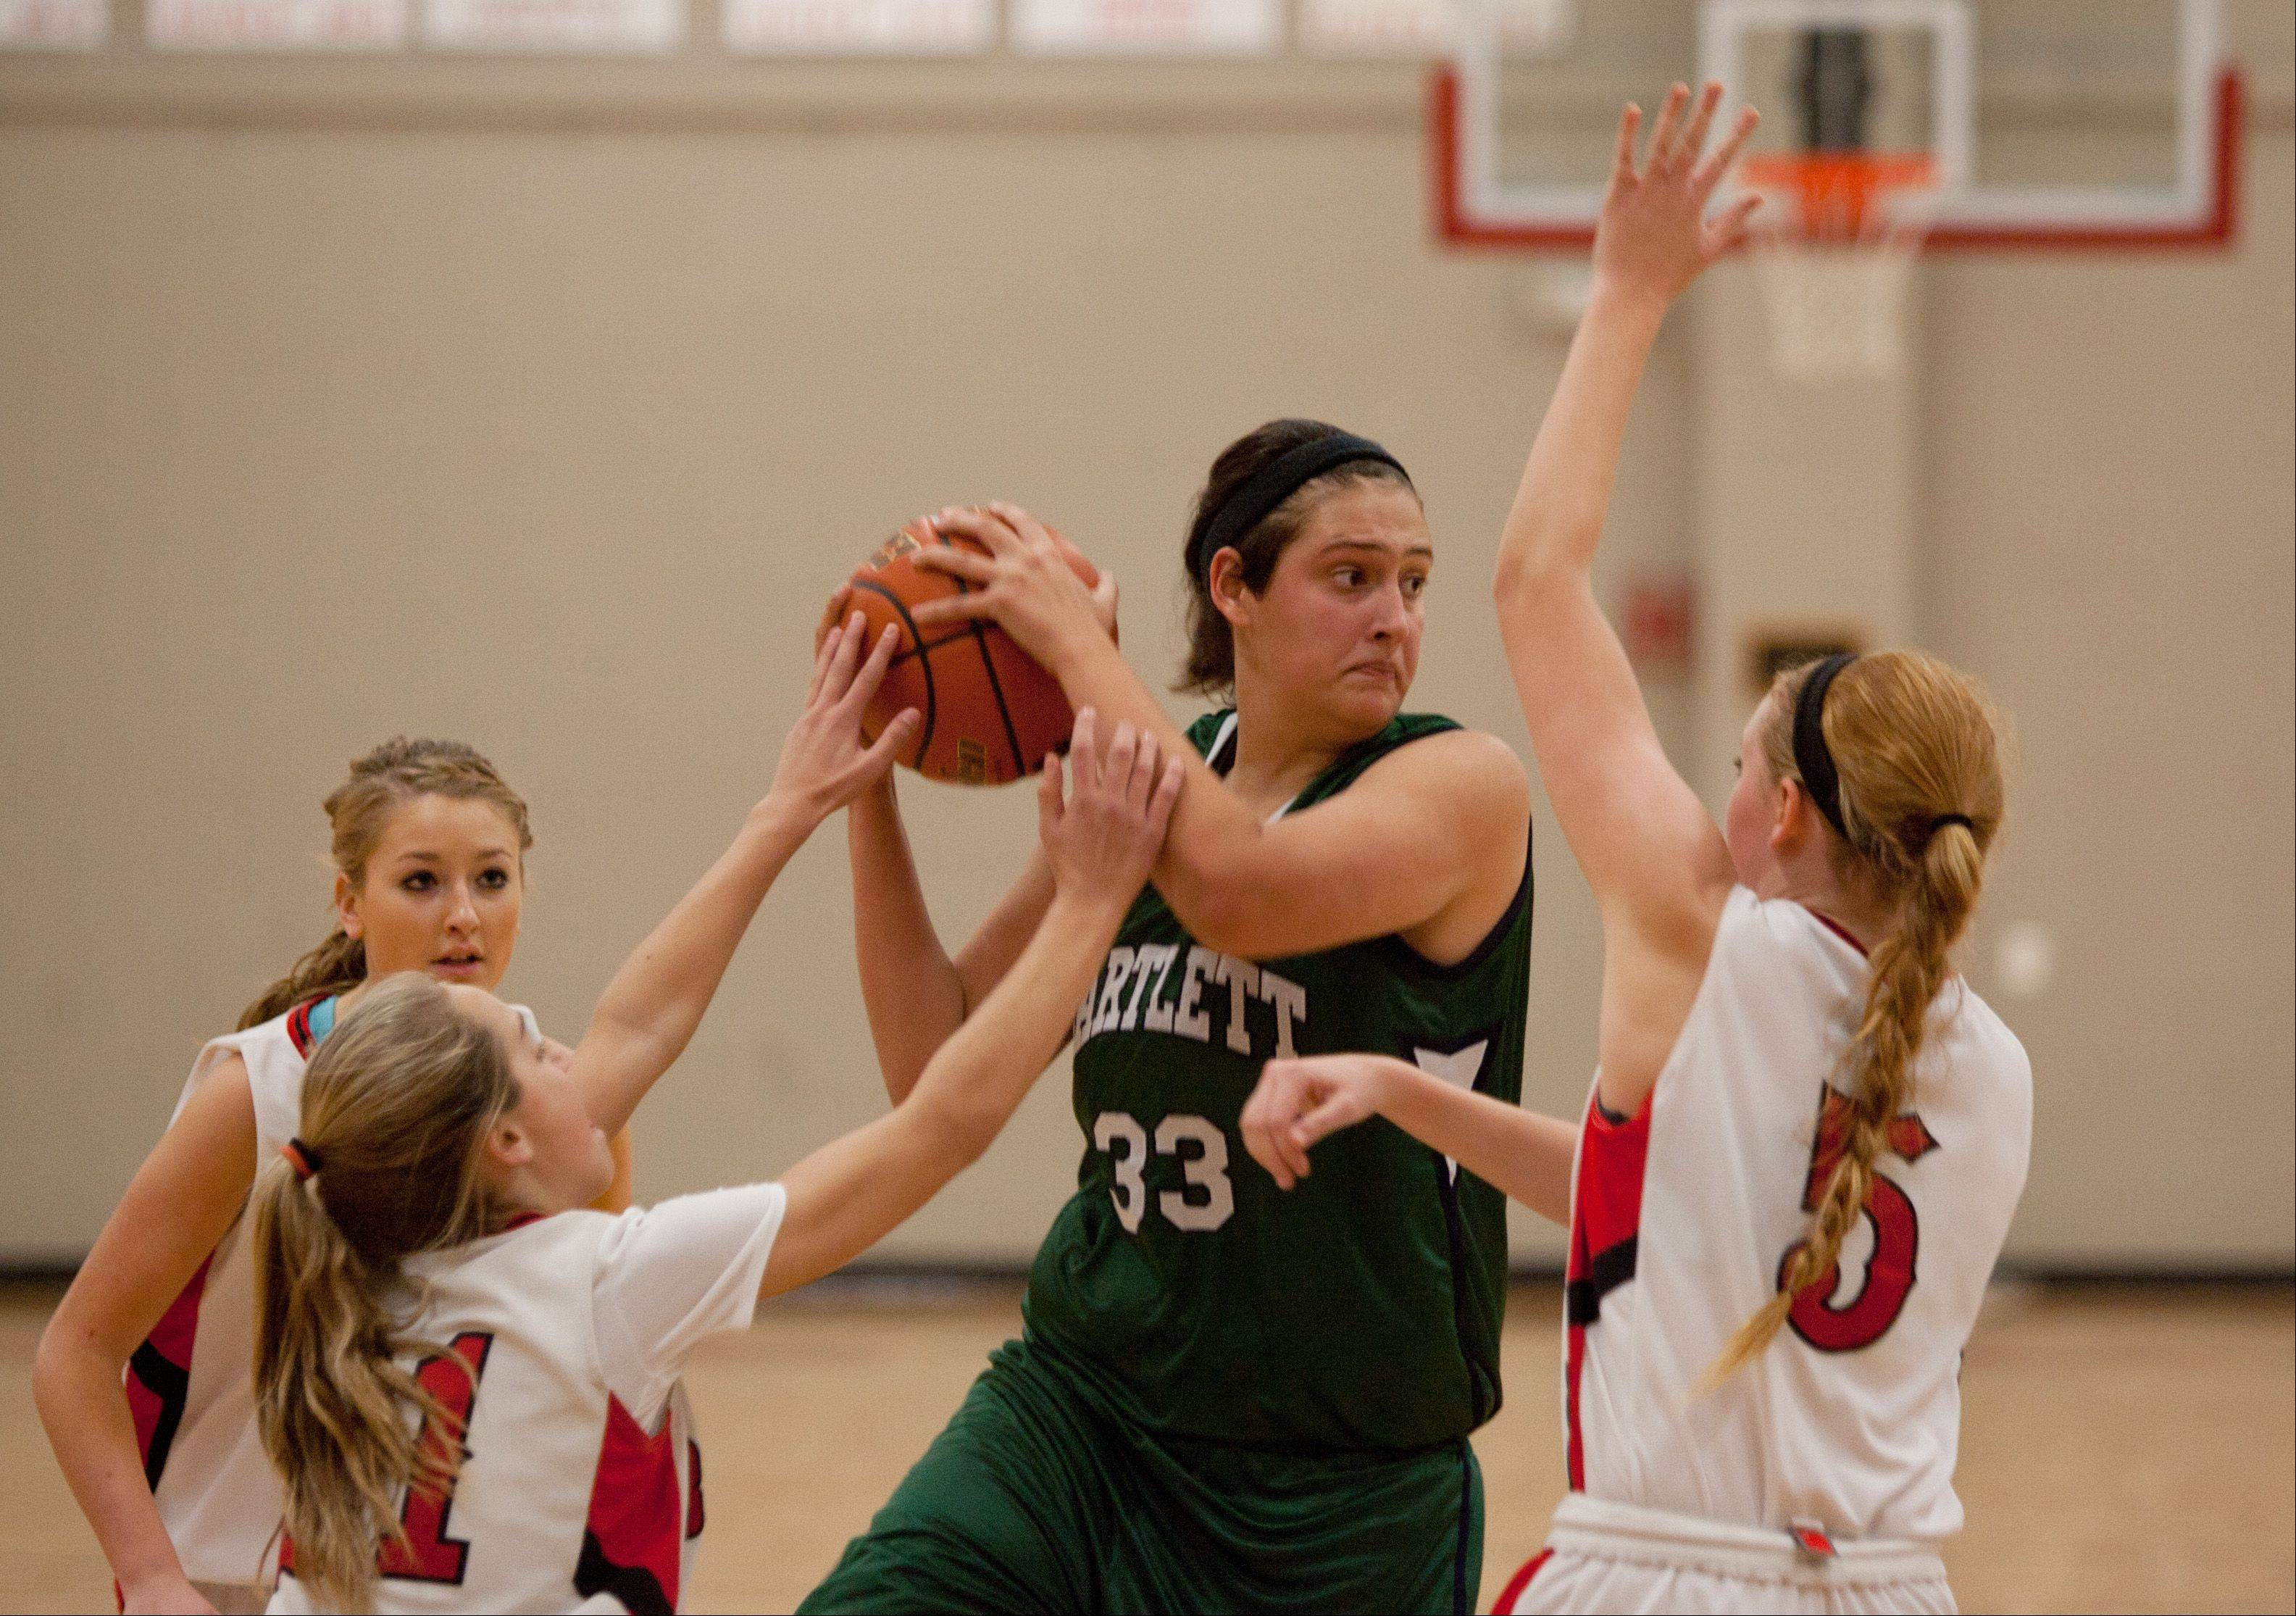 Bartlett's Alyssa Hernandez, center, battles Benet's Kathleen Doyle, left, and Jenna Martin, right, during girls basketball action at Benet,